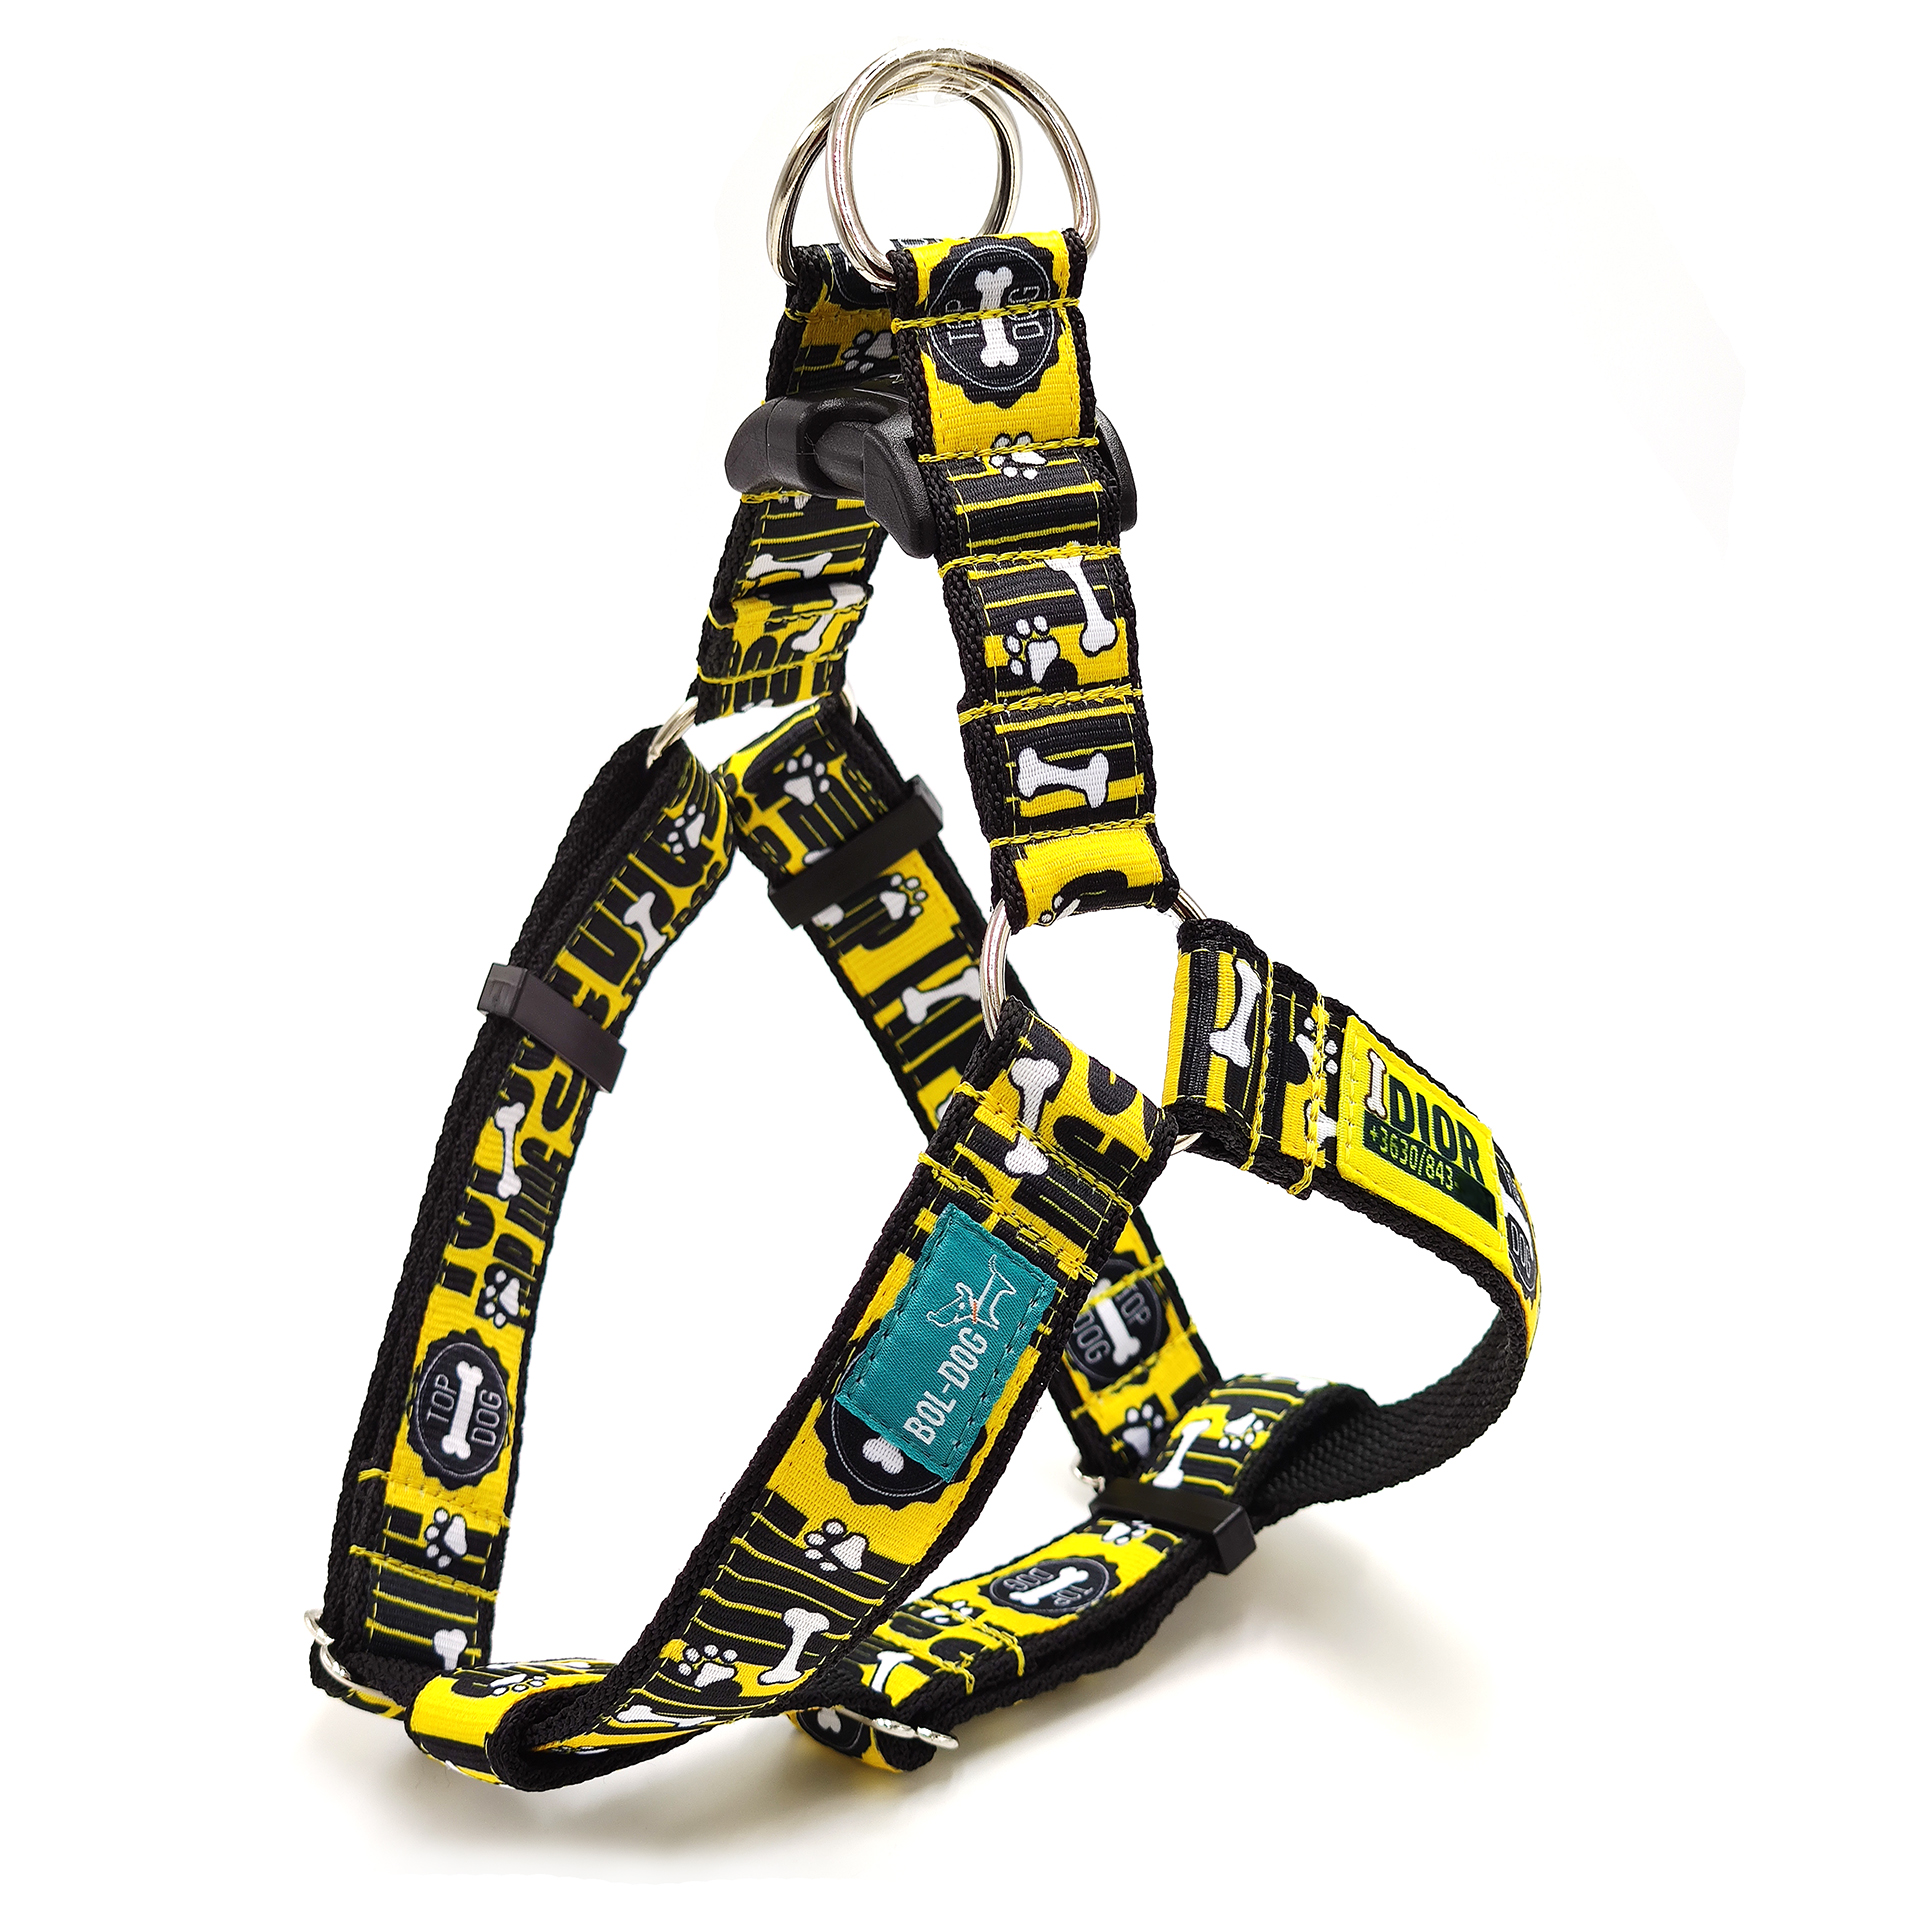 Topdog dog harness